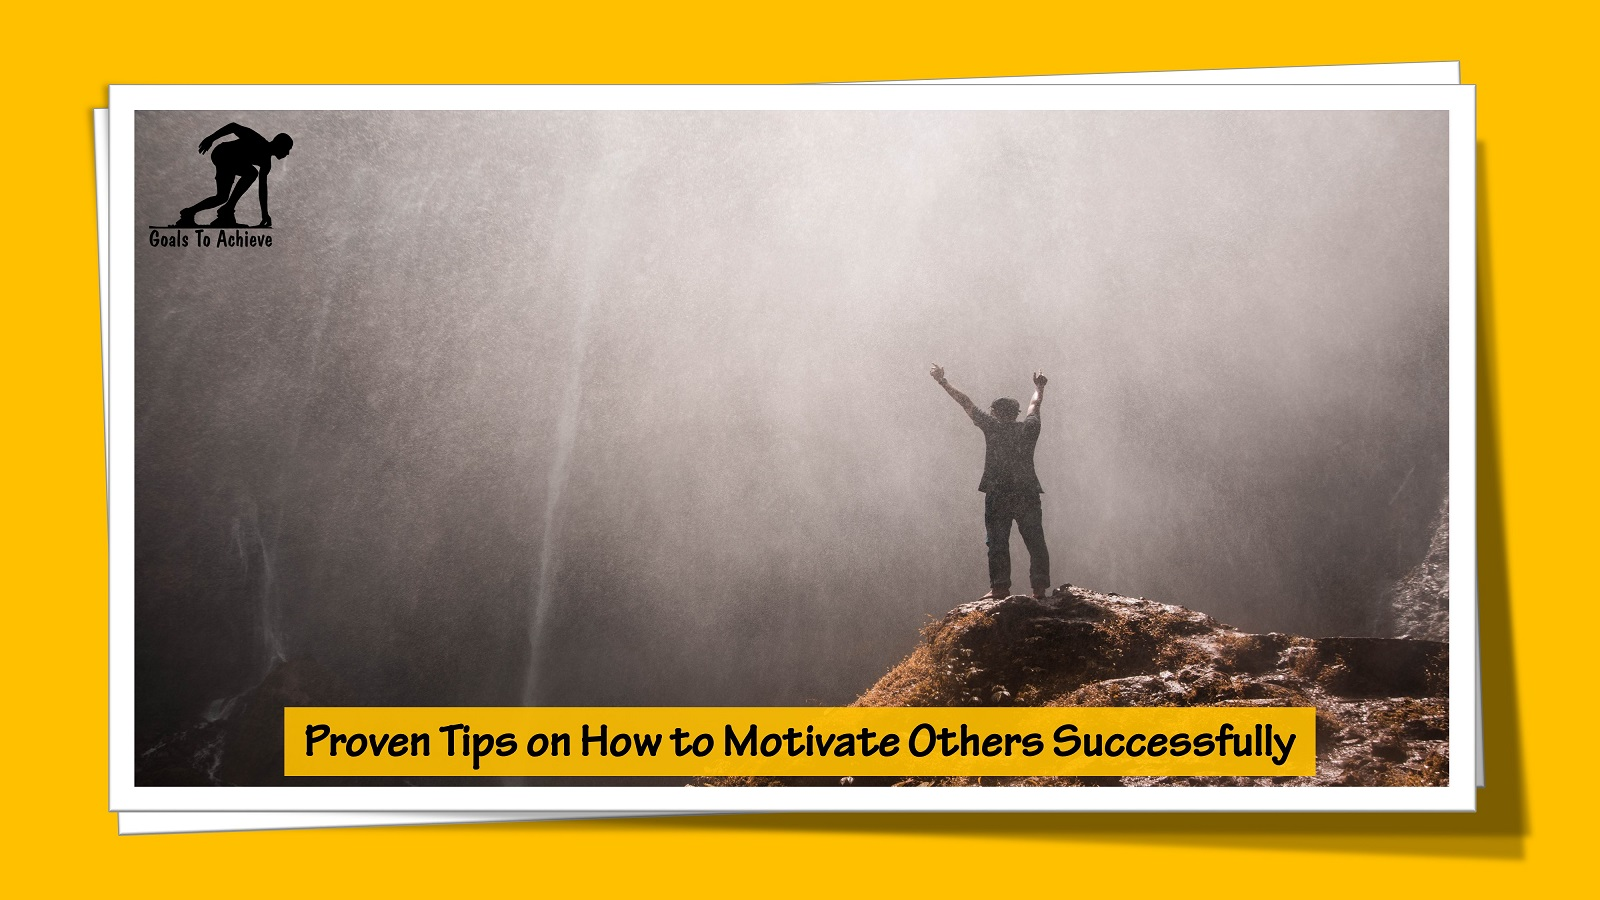 Proven Tips on How to Motivate Others Successfully